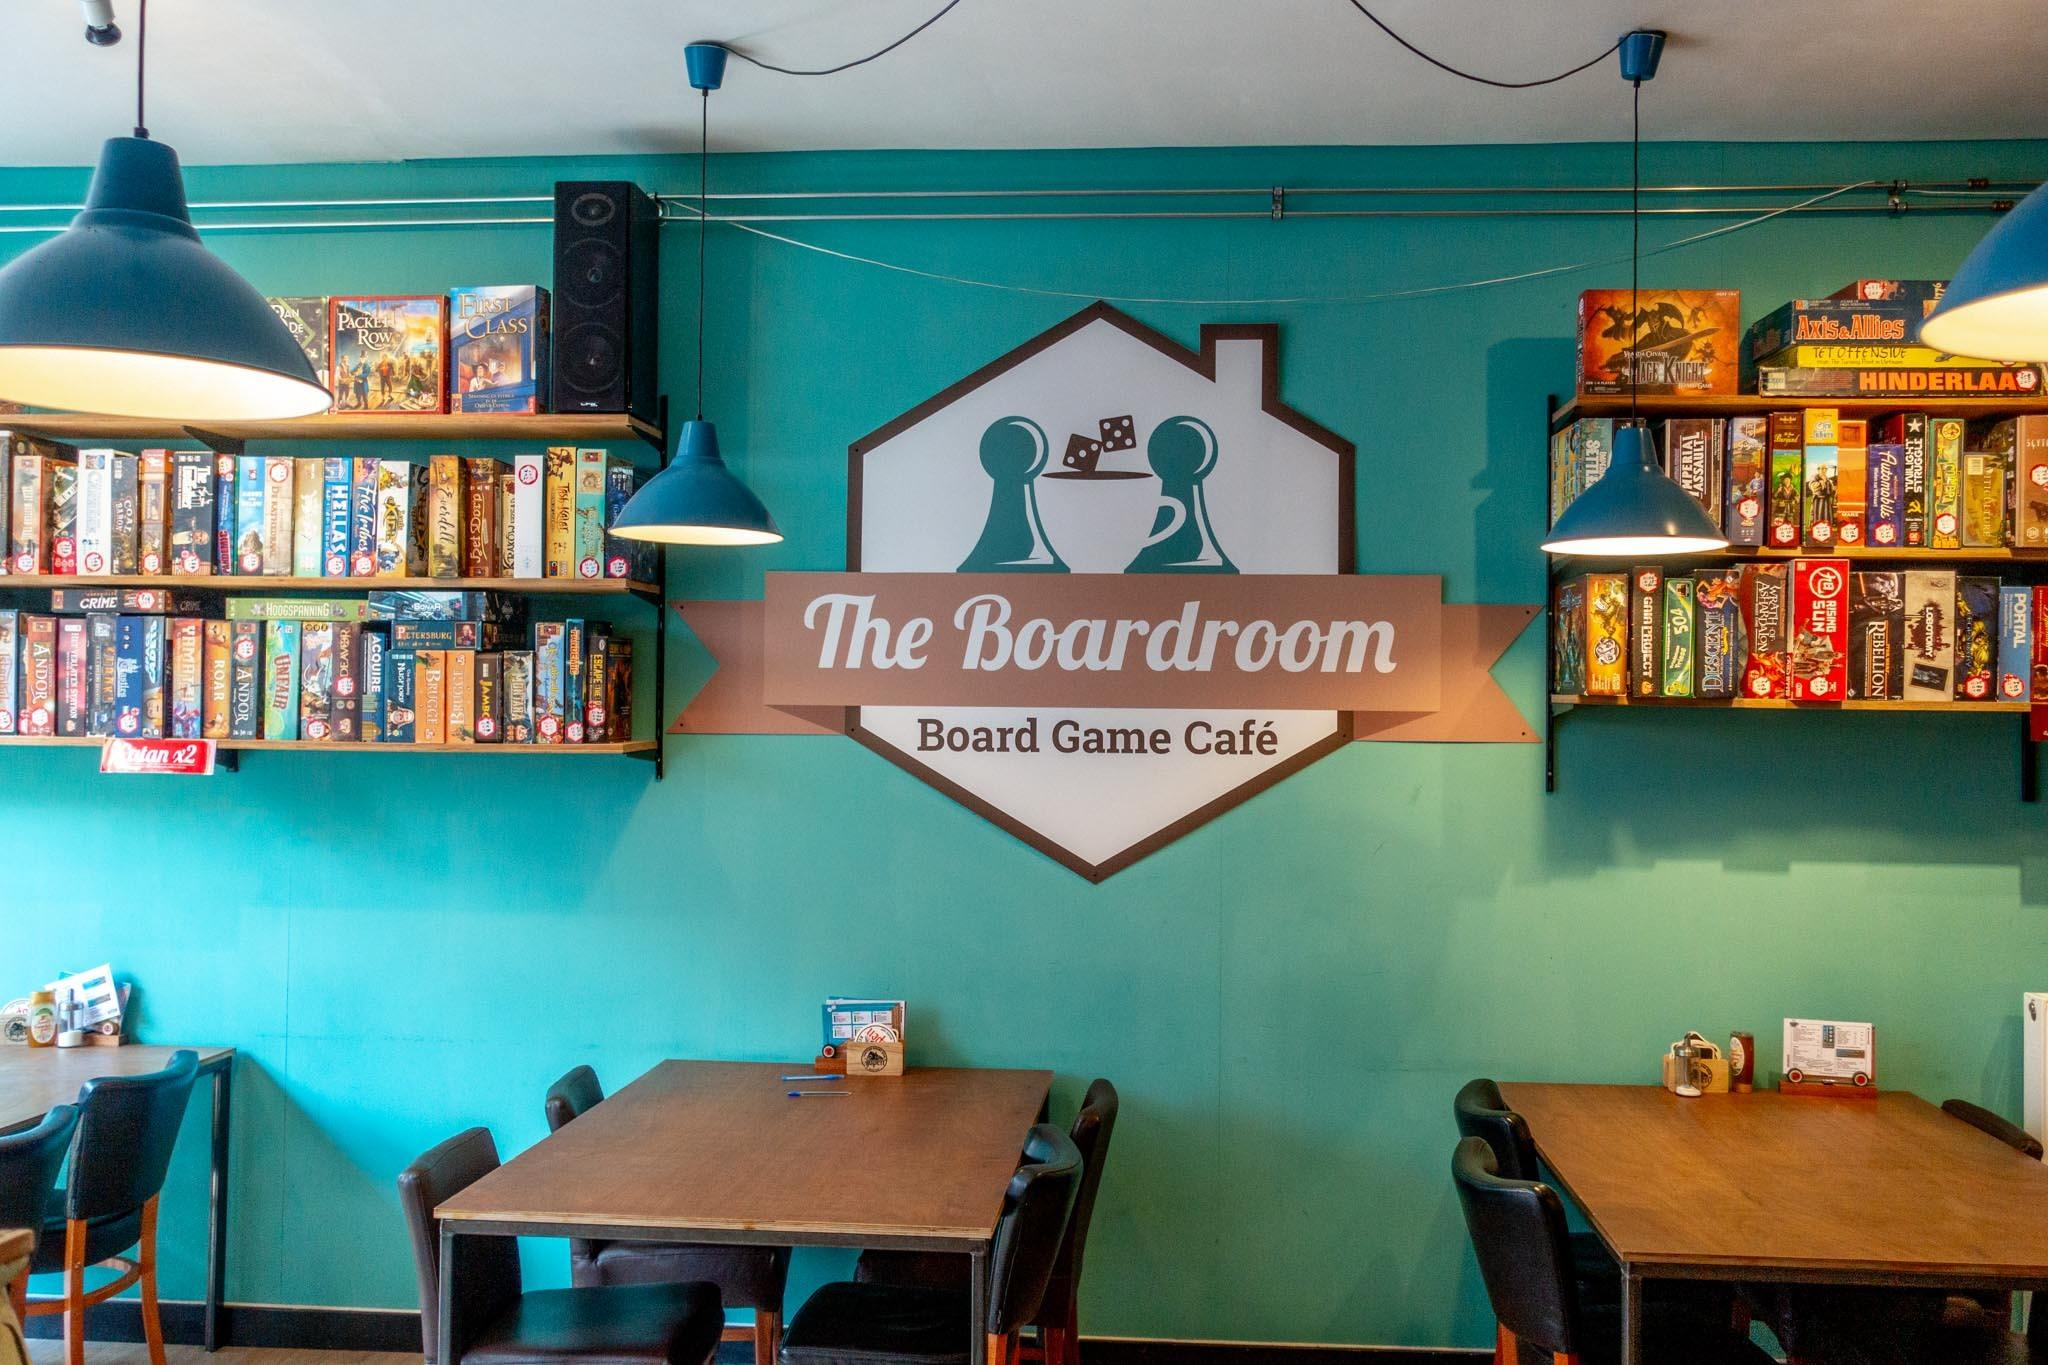 Interior of a cafe with tables, chairs, and boardgames on shelves